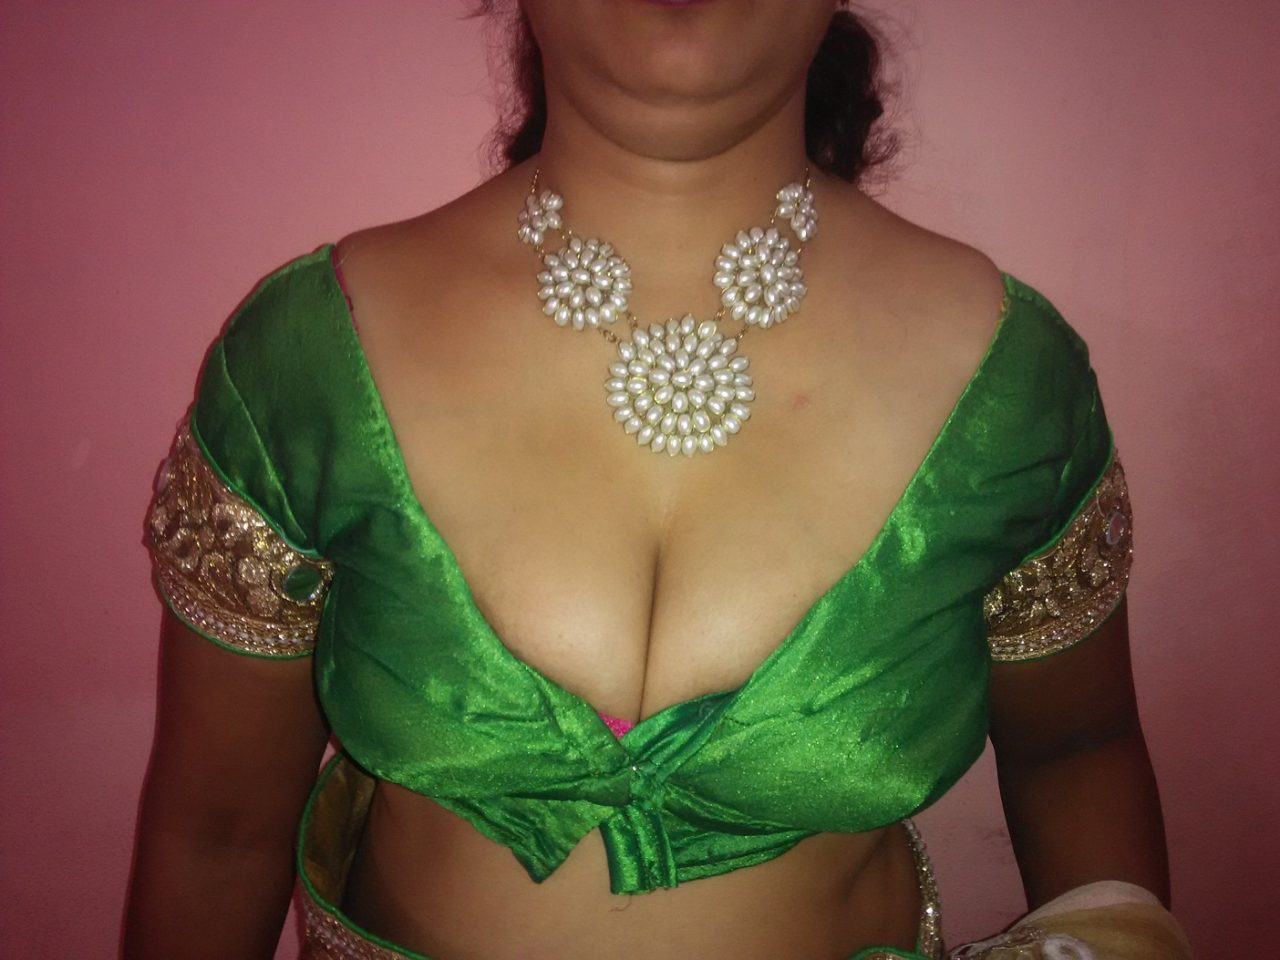 aunty blouse cleavage